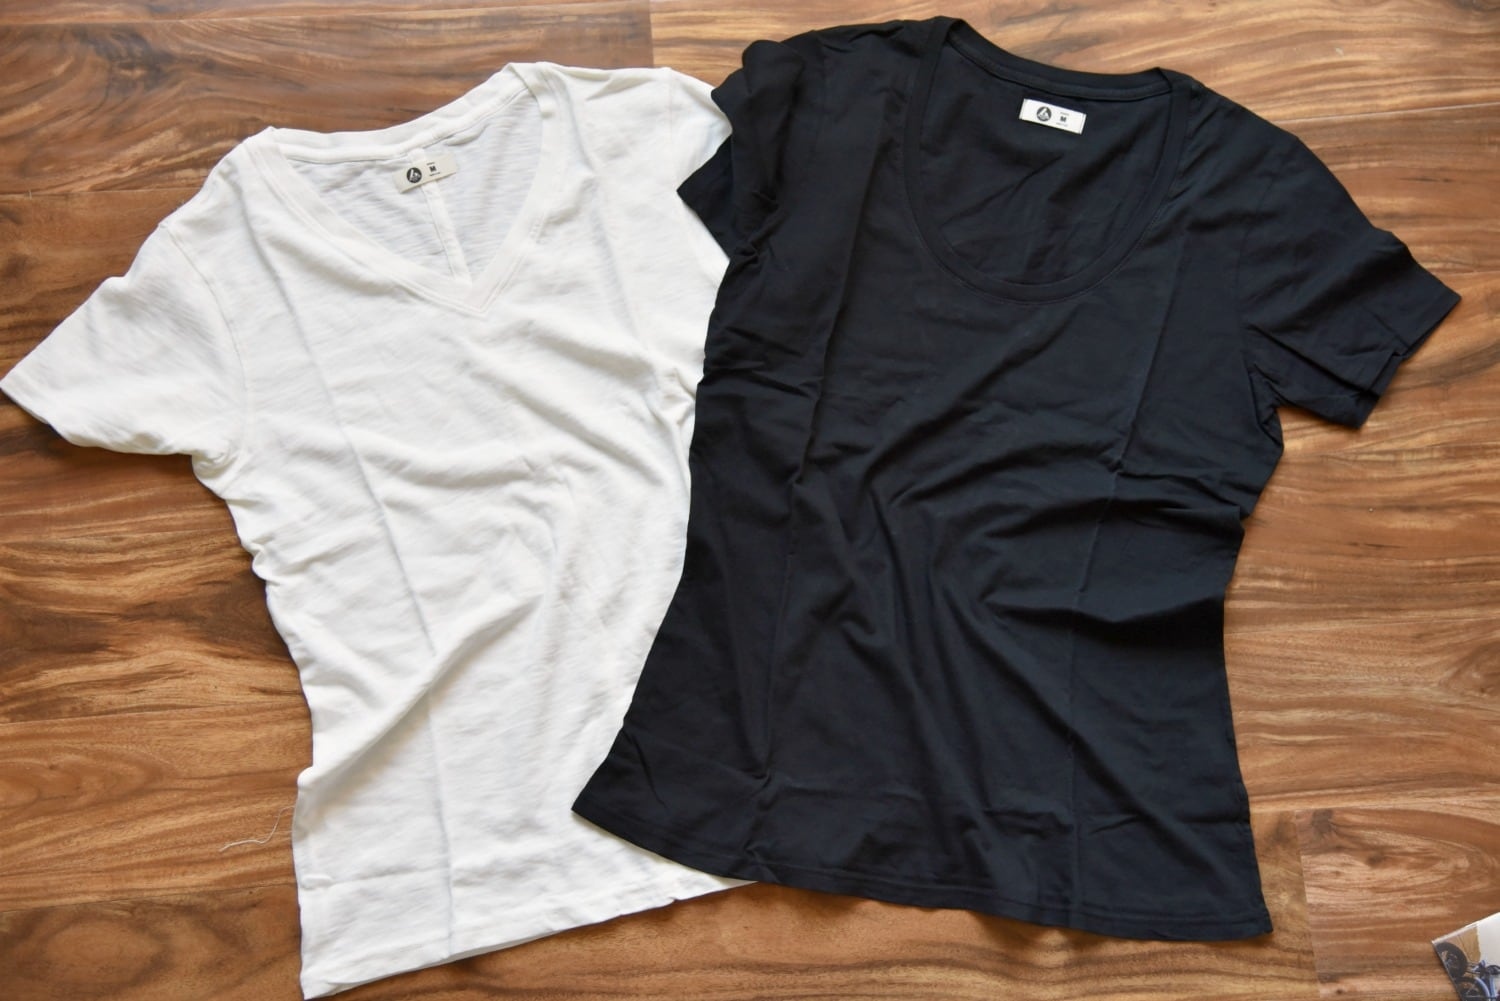 American Giant t-shirts